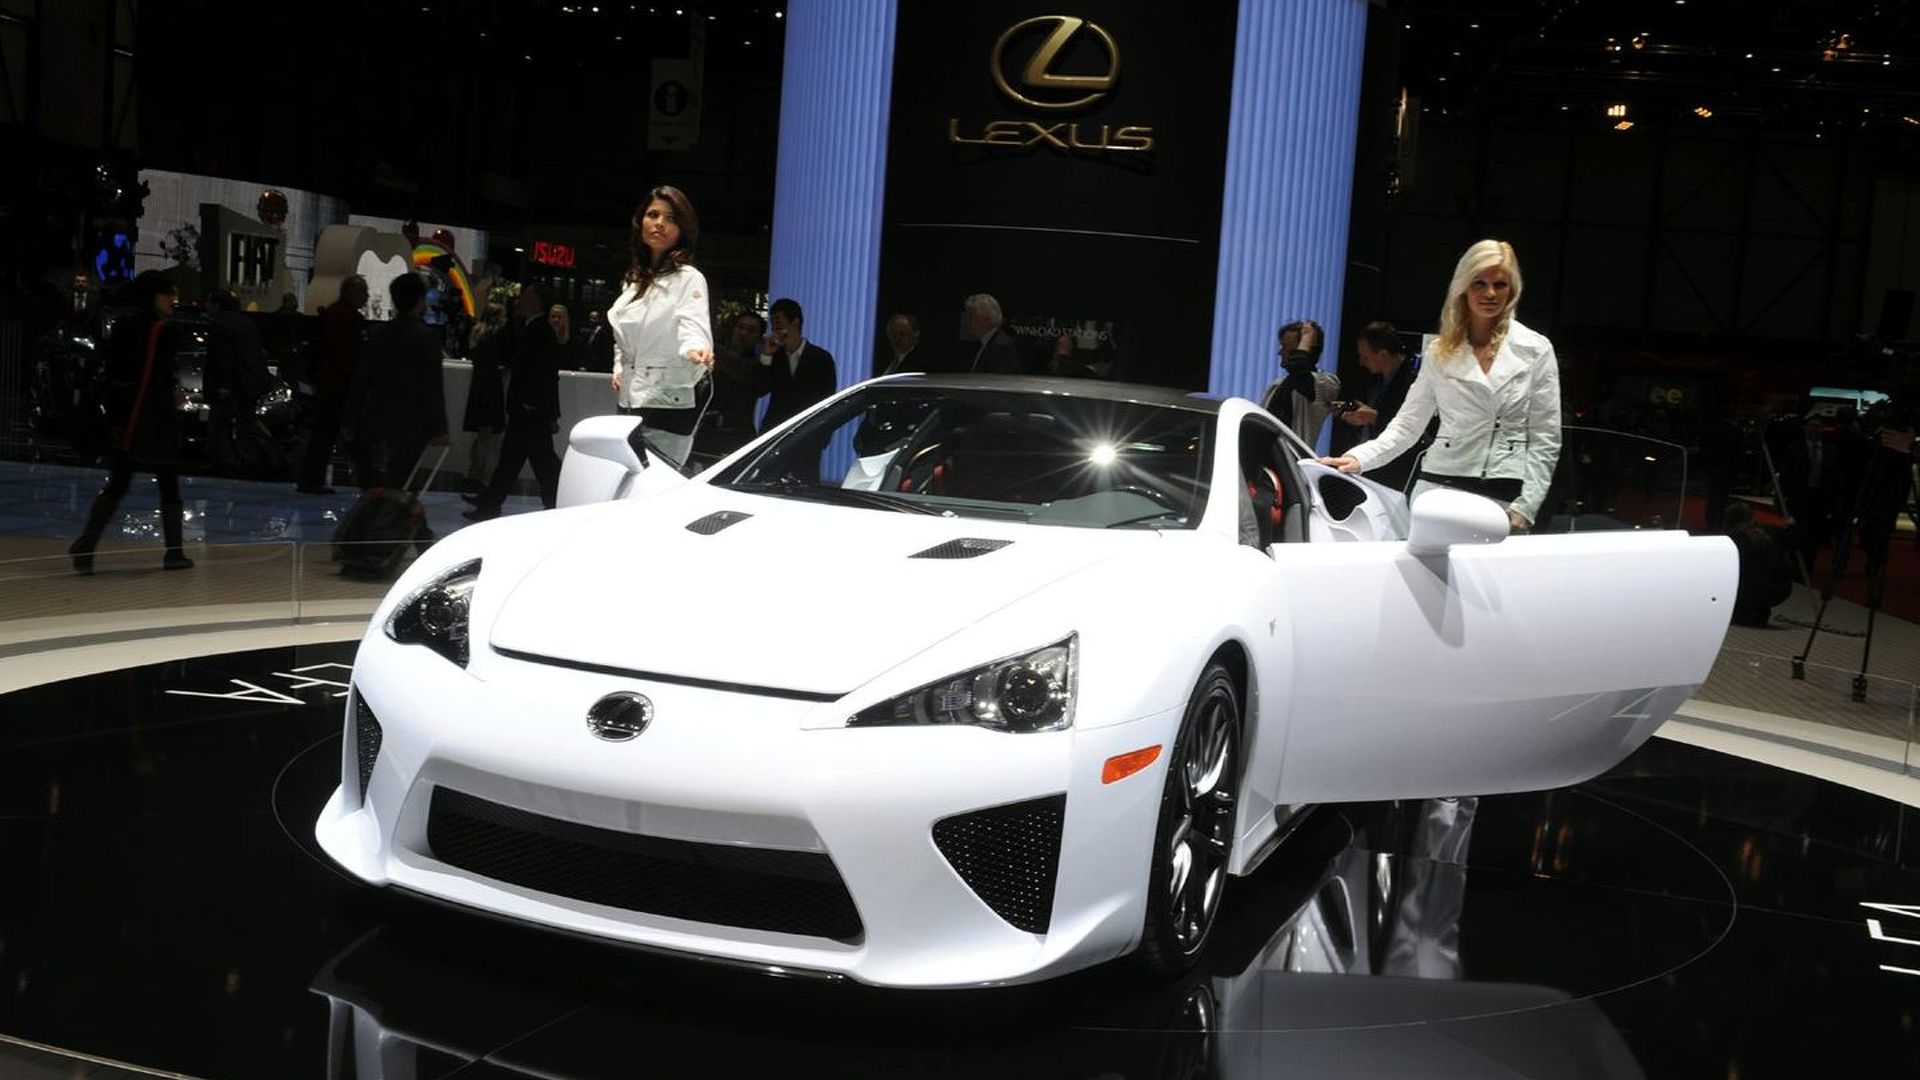 Lexus LFA full purchase now allowed in U.S., but only with right of refusal agreement